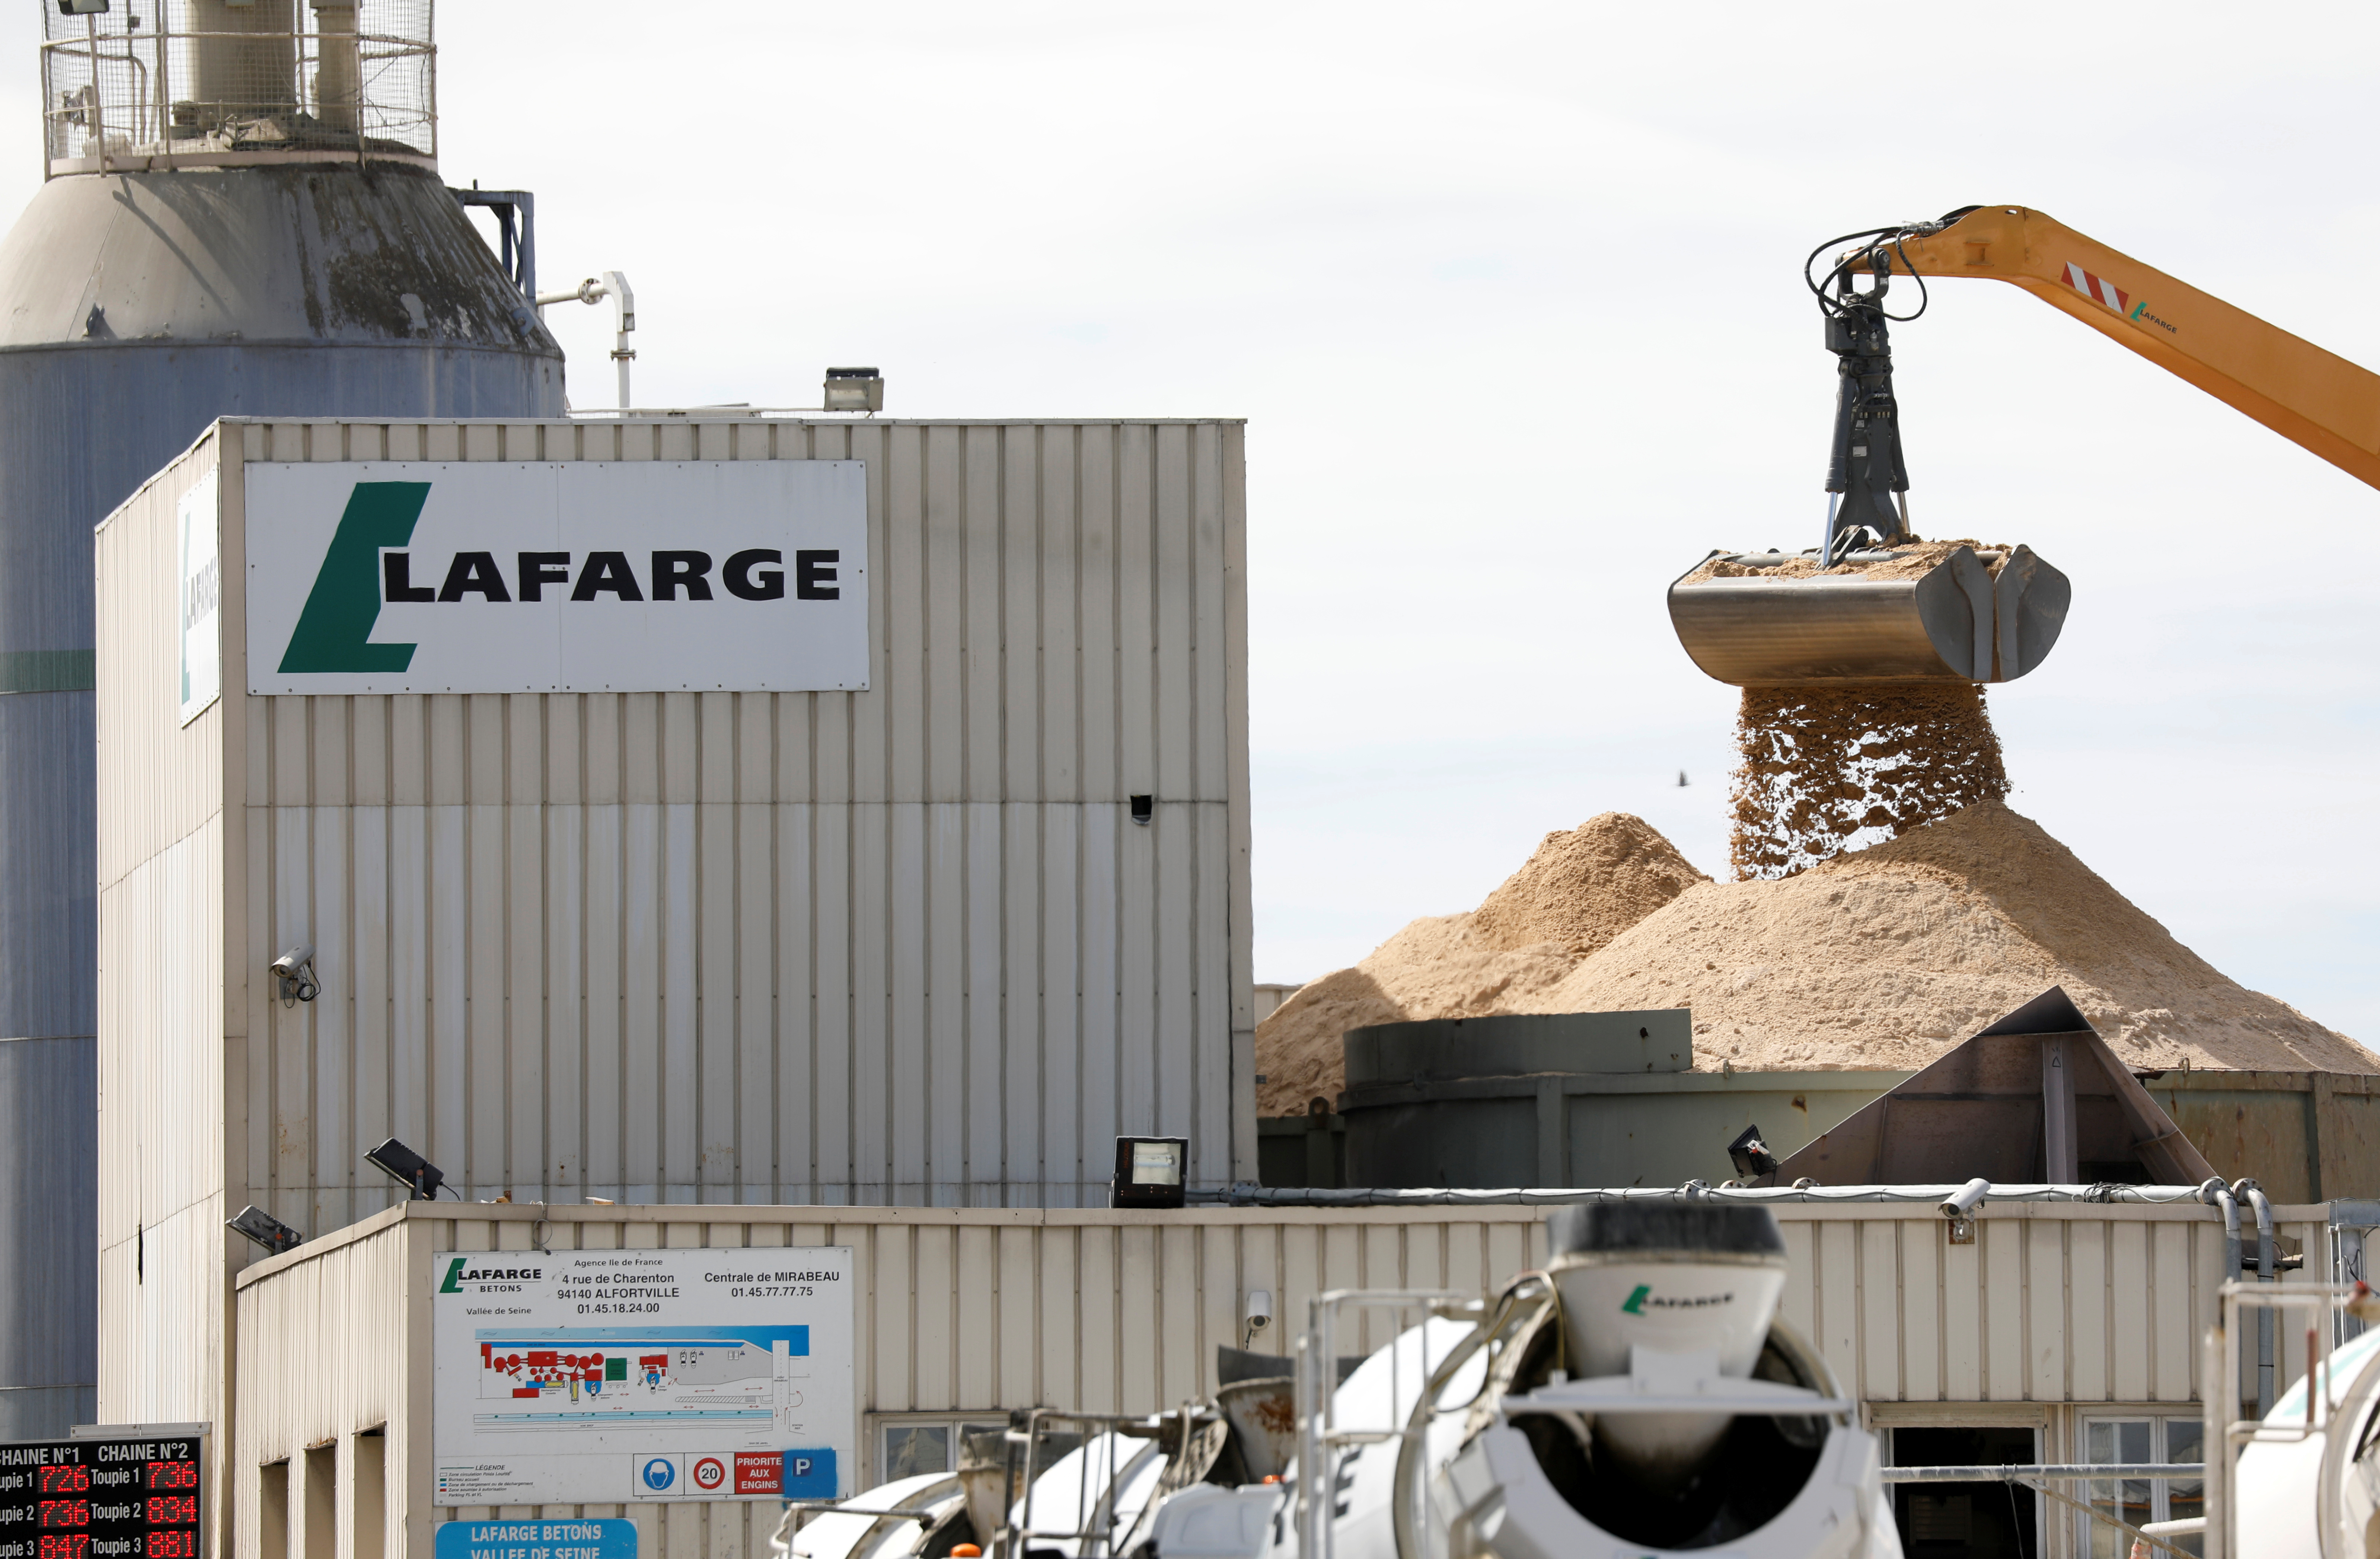 A logo is seen at a Lafarge concrete production plant of Javel on the banks of the river Seine in Paris, France, September 3, 2020. REUTERS/Charles Platiau/Files